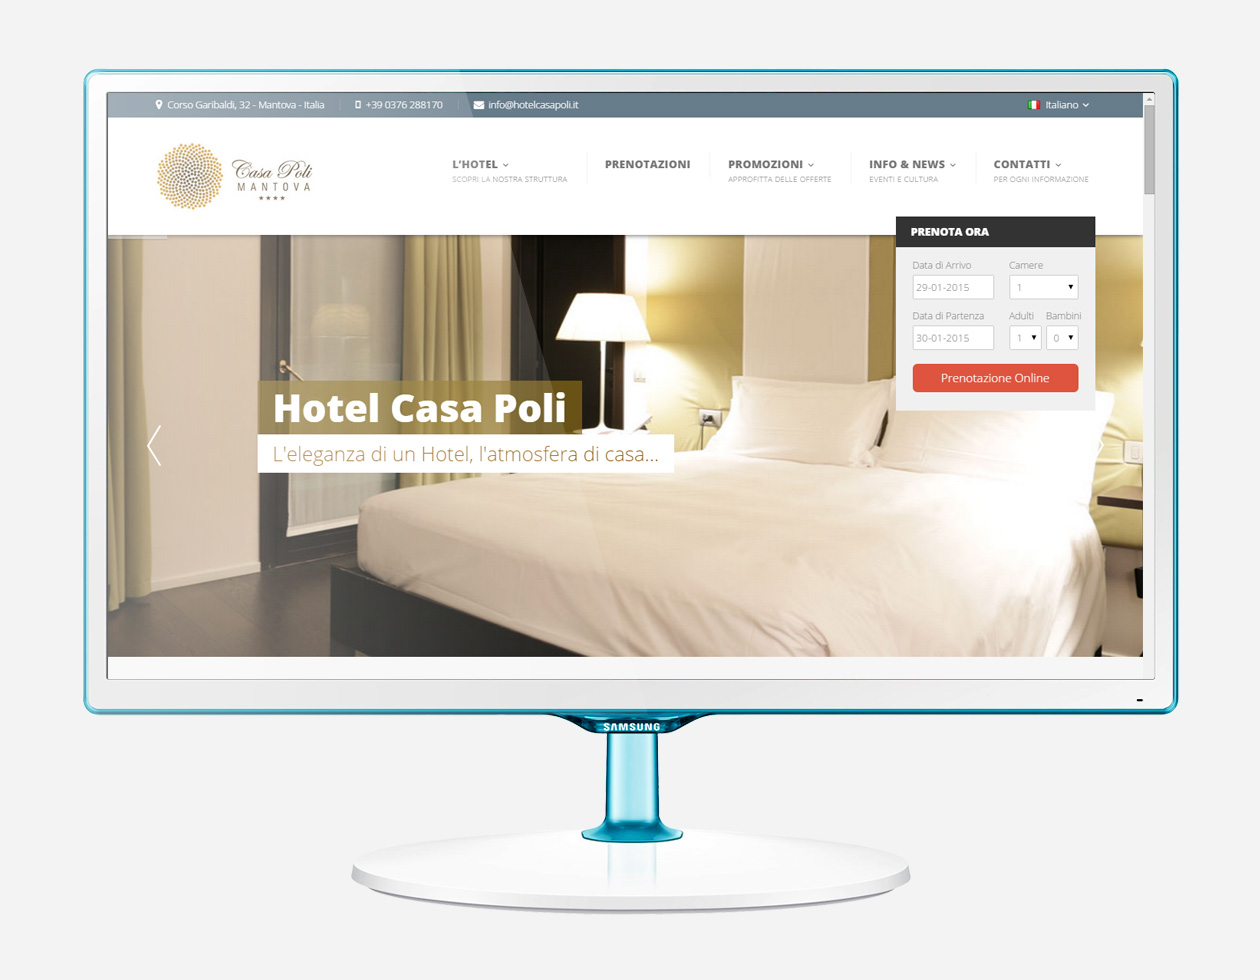 hotel-casa-poli-screenshot